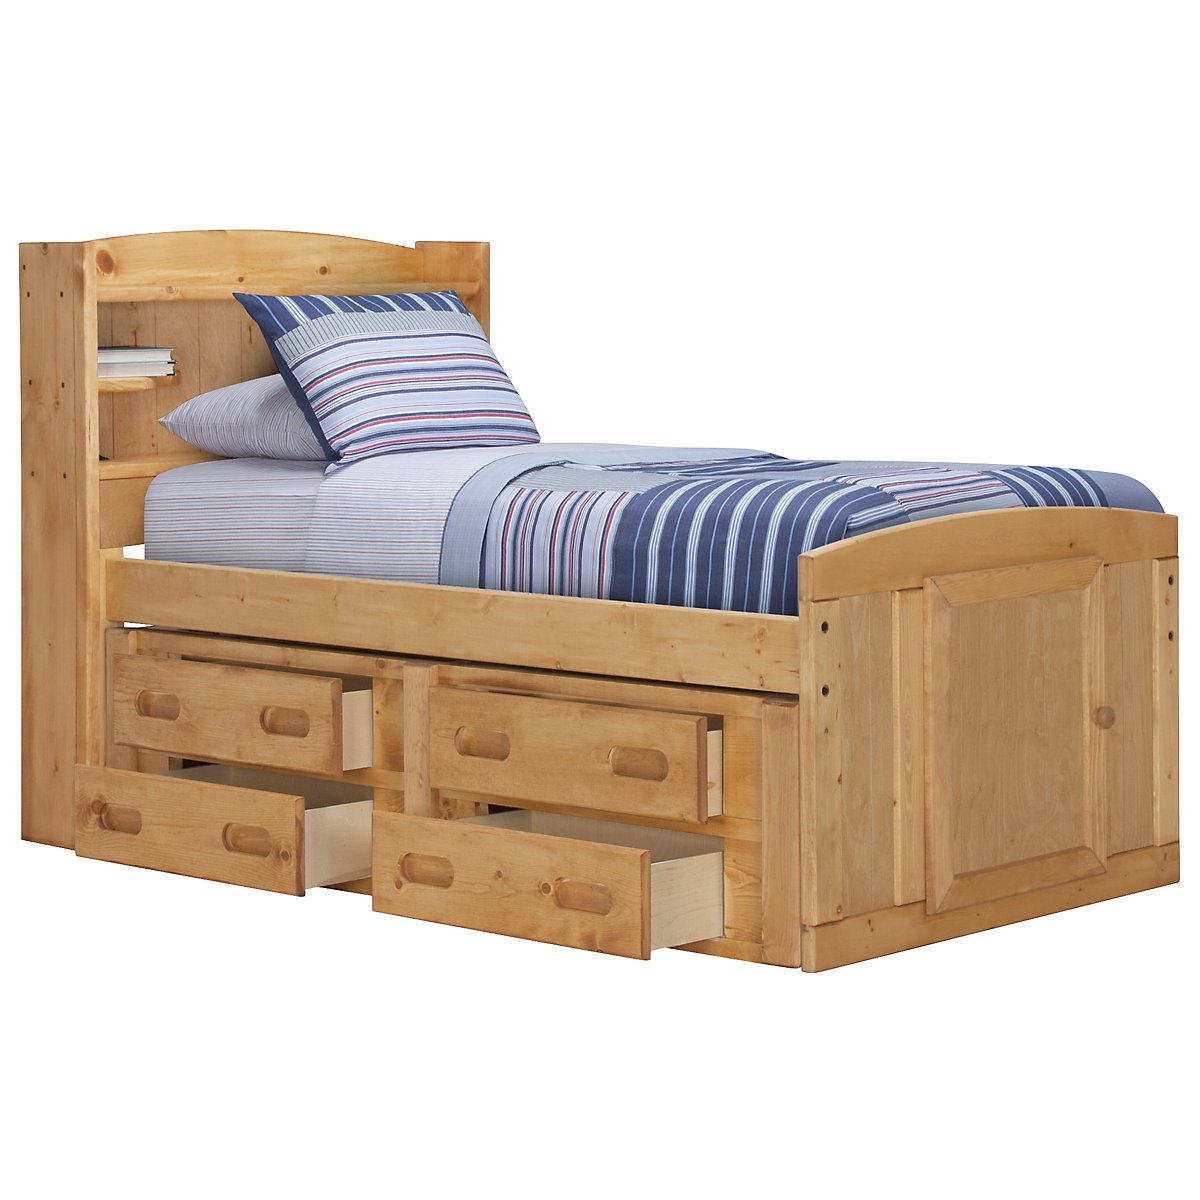 Cinnamon Mid Tone Bookcase Storage Bed